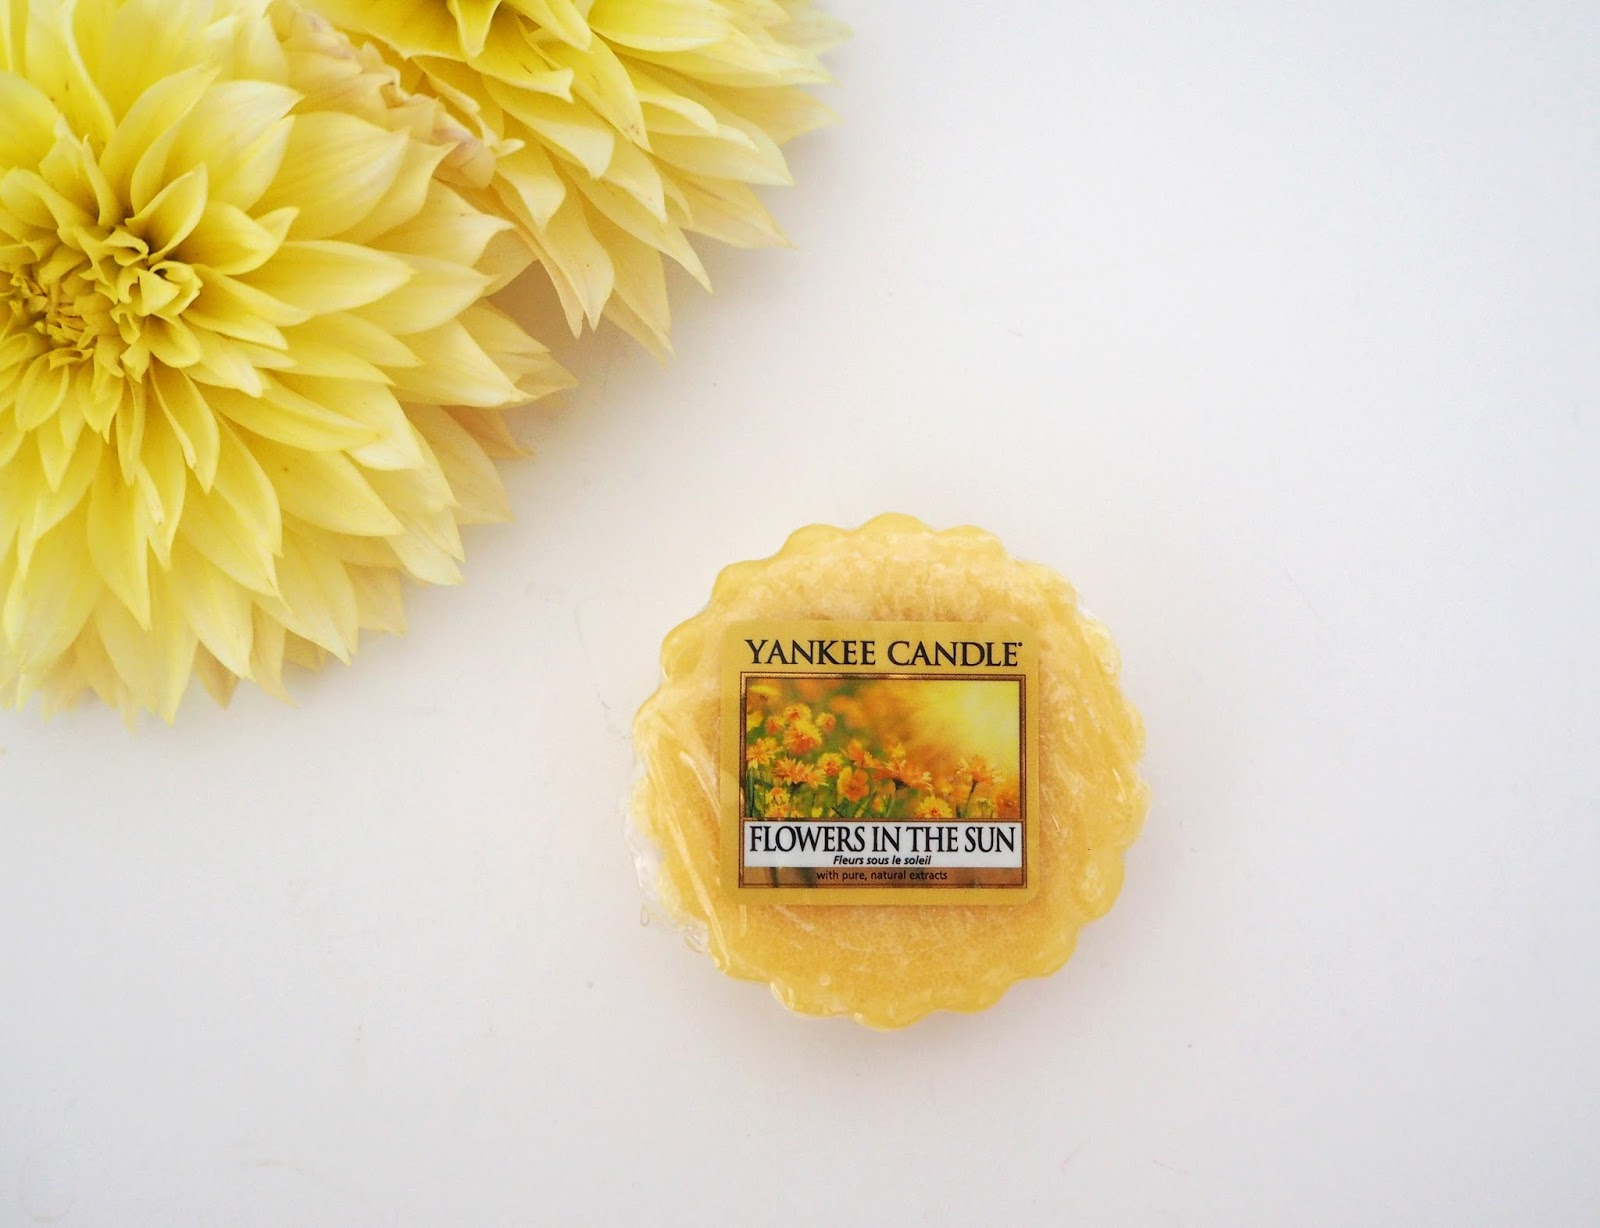 Yankee Candle Flowers in the Sun Fragrance Review, Wax Melt, Loves List: August | Katie Kirk Loves